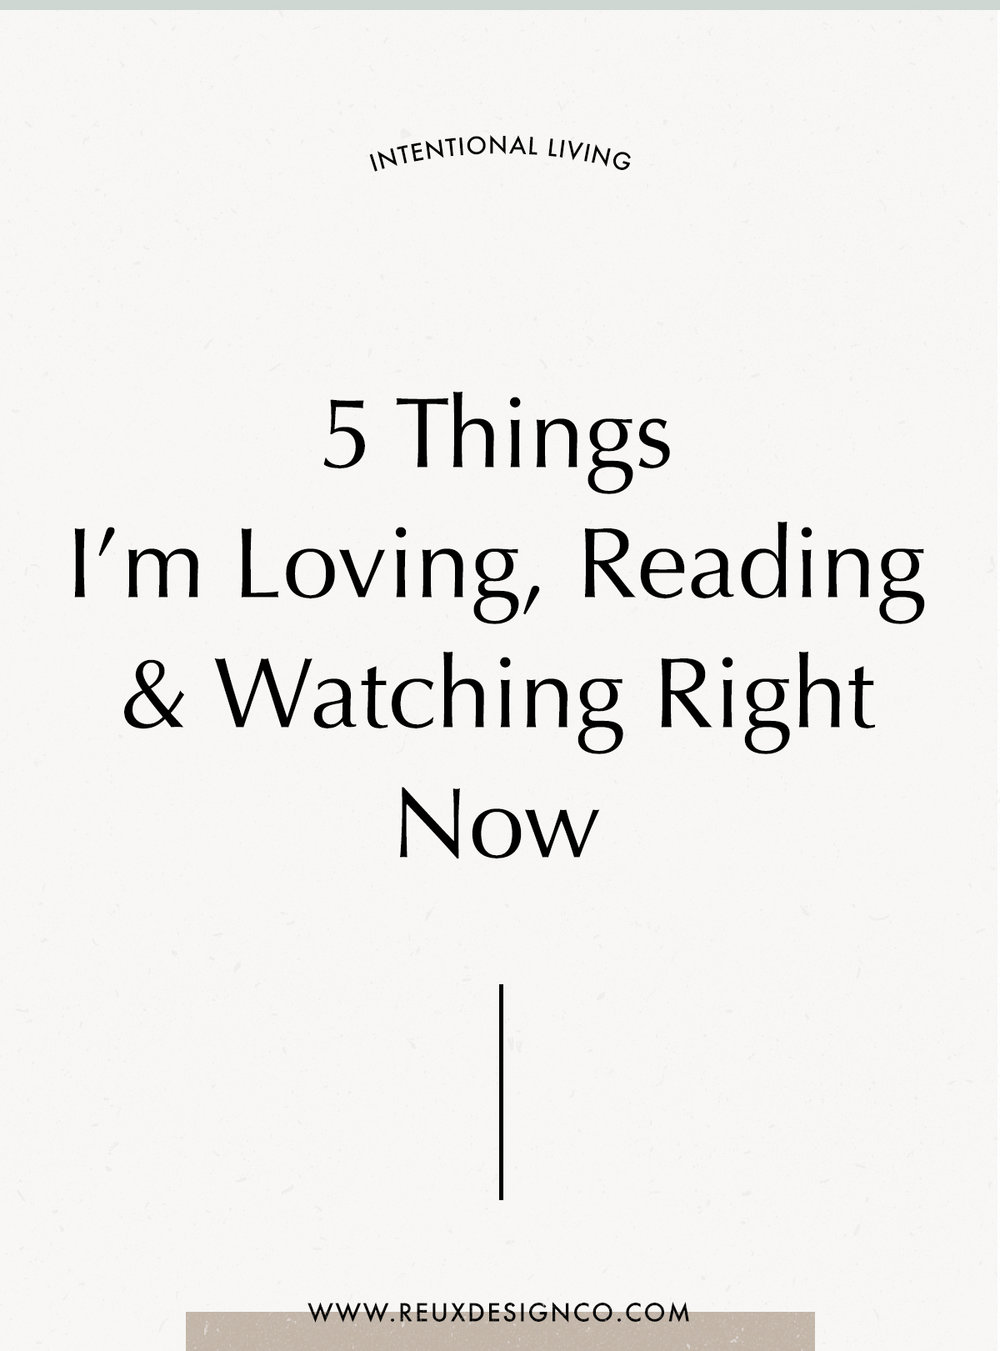 5 Inspirational things that I'm loving reading, listening to, watching and using in my business right now | intentional living business advice | where I find inspiration in my day to day business | Reux Design Co.